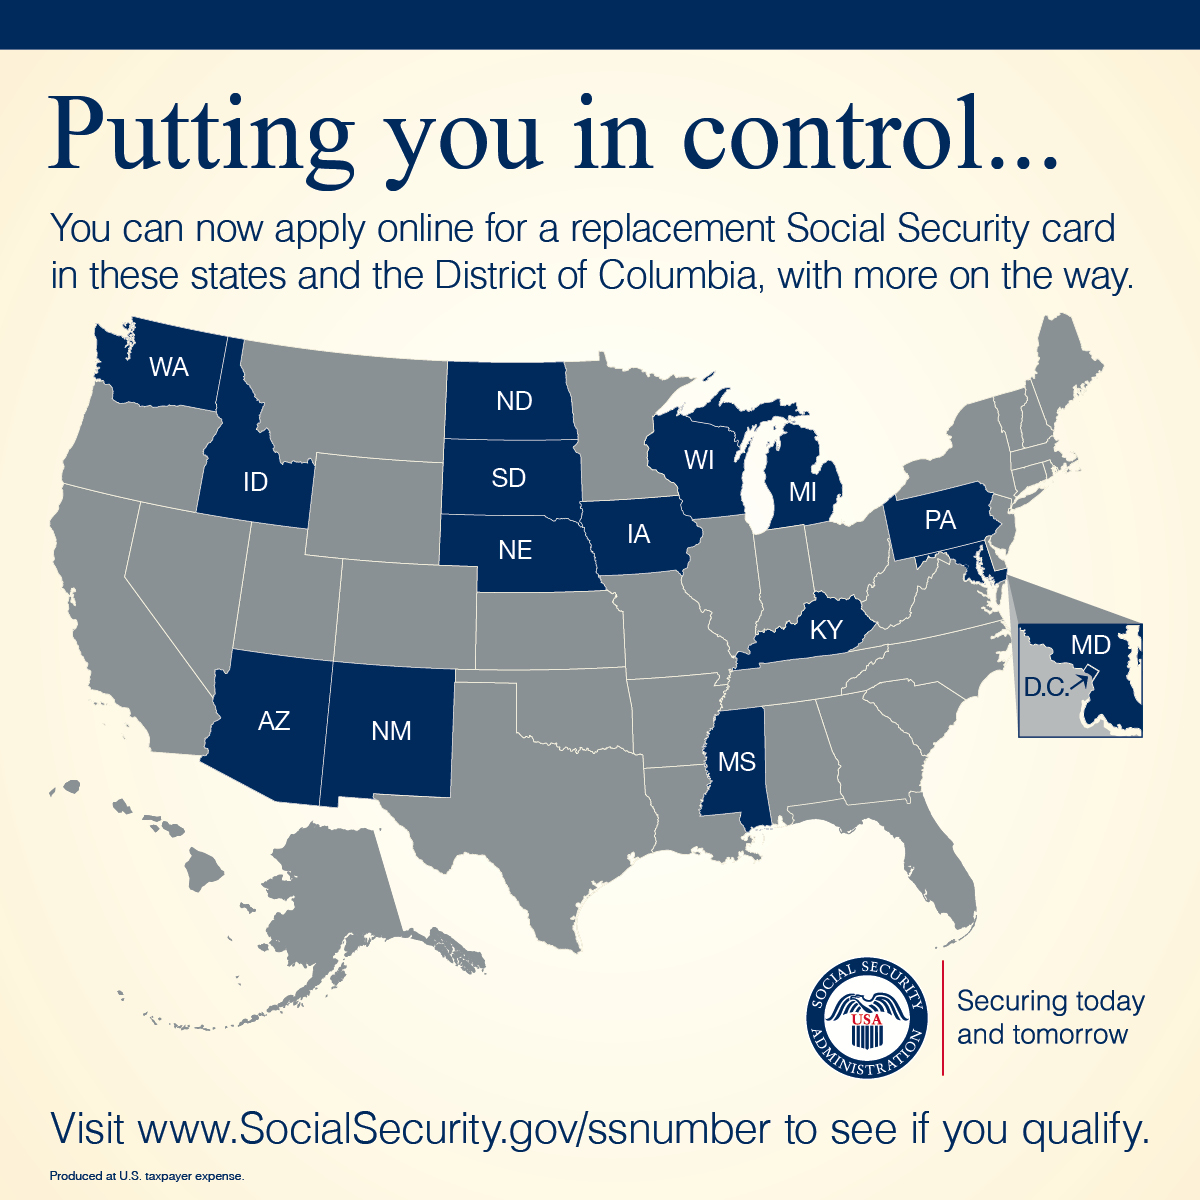 How long does it take to replace a social security card online